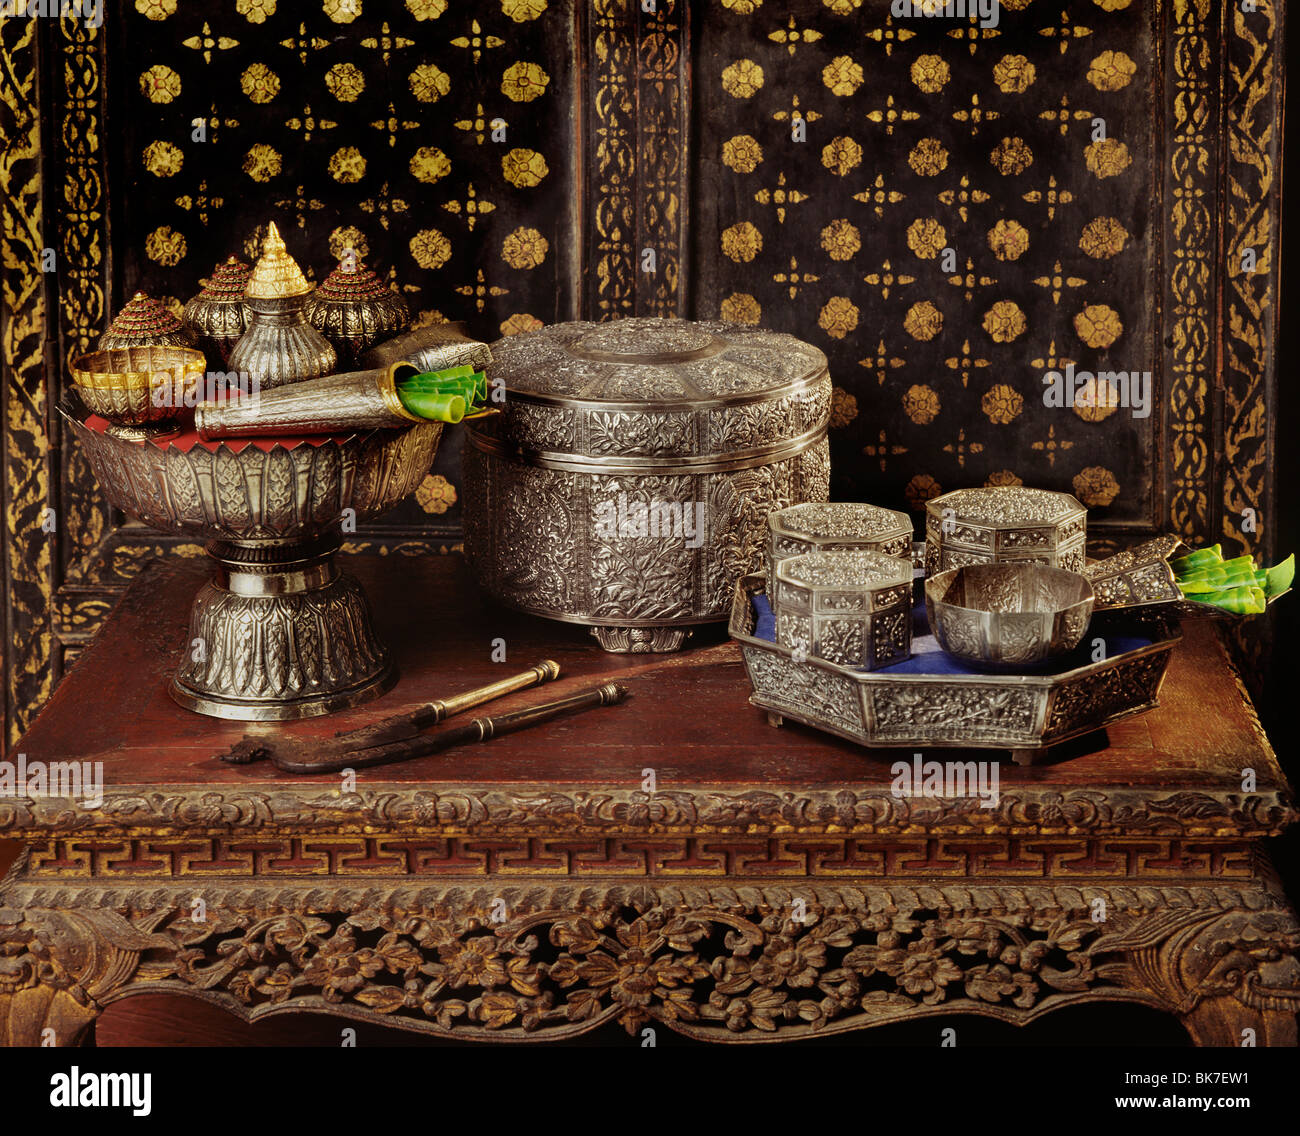 Finely-crafted silver trays and containers used for betel-nut in Thailand, Southeast Asia, Asia - Stock Image